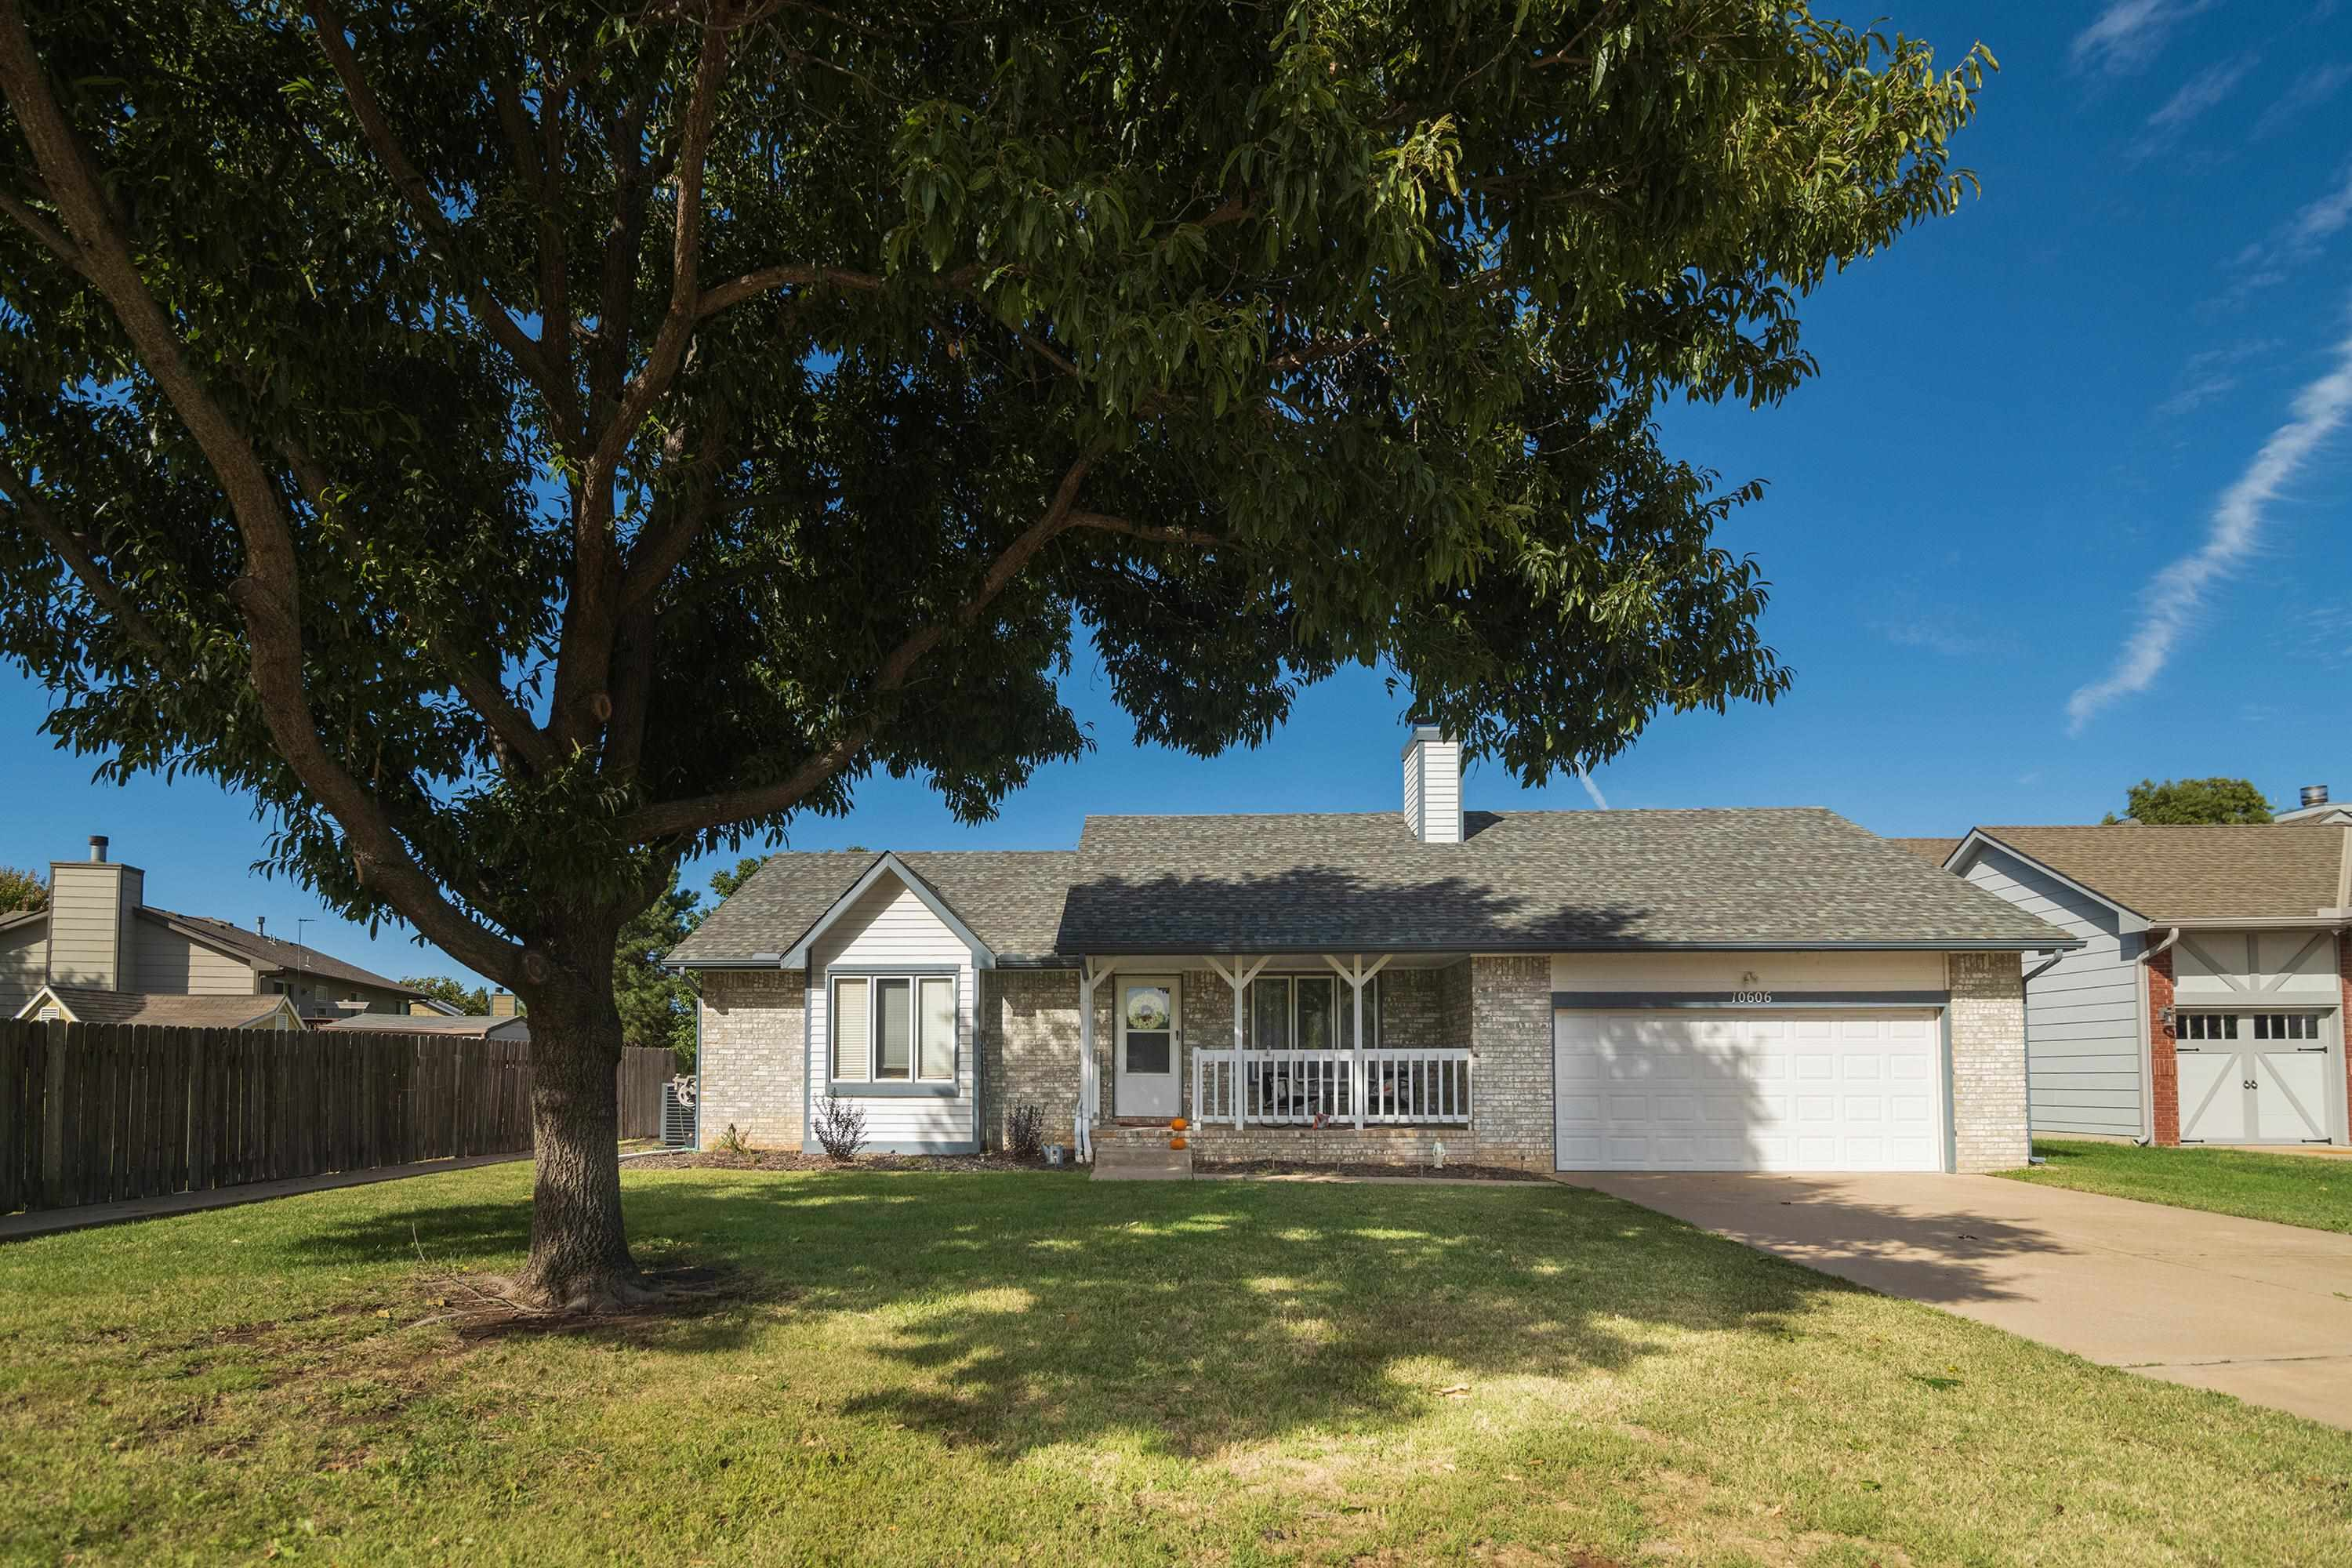 What a cozy ranch with an inviting front porch, mature trees and nice landscaping! This 3 BR 2 BA 2